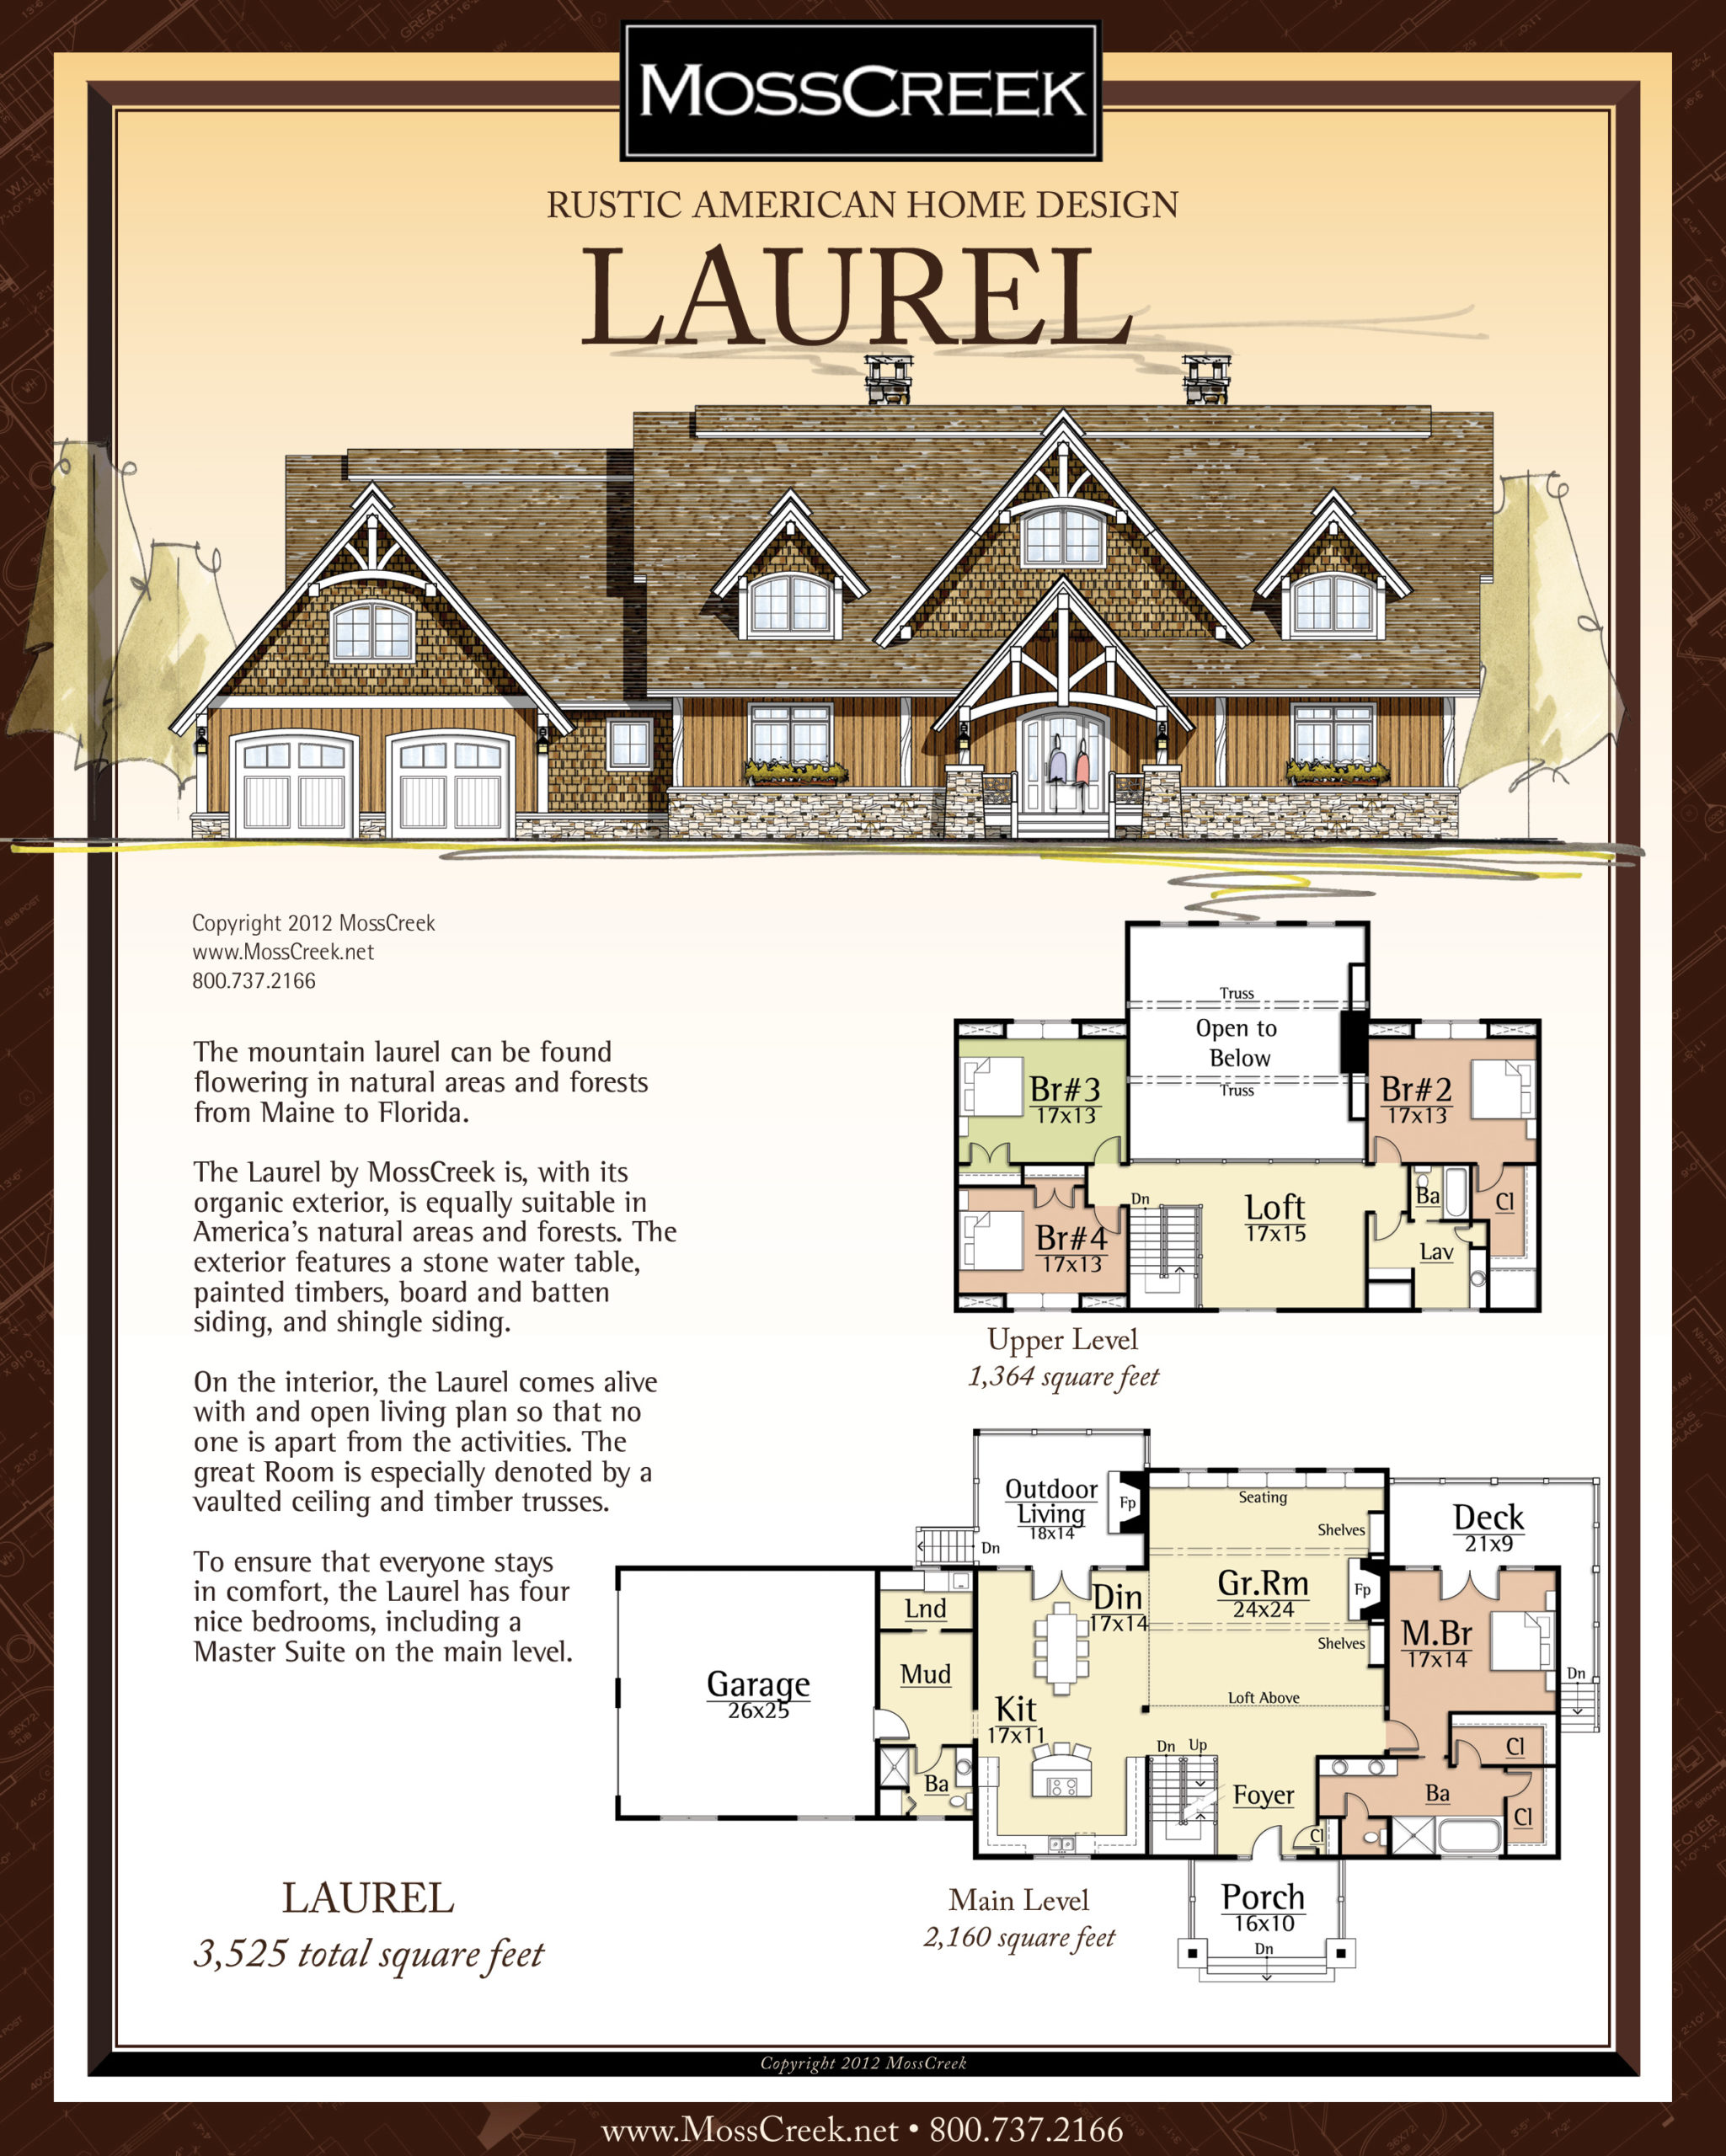 MossCreek Laurel floor plan